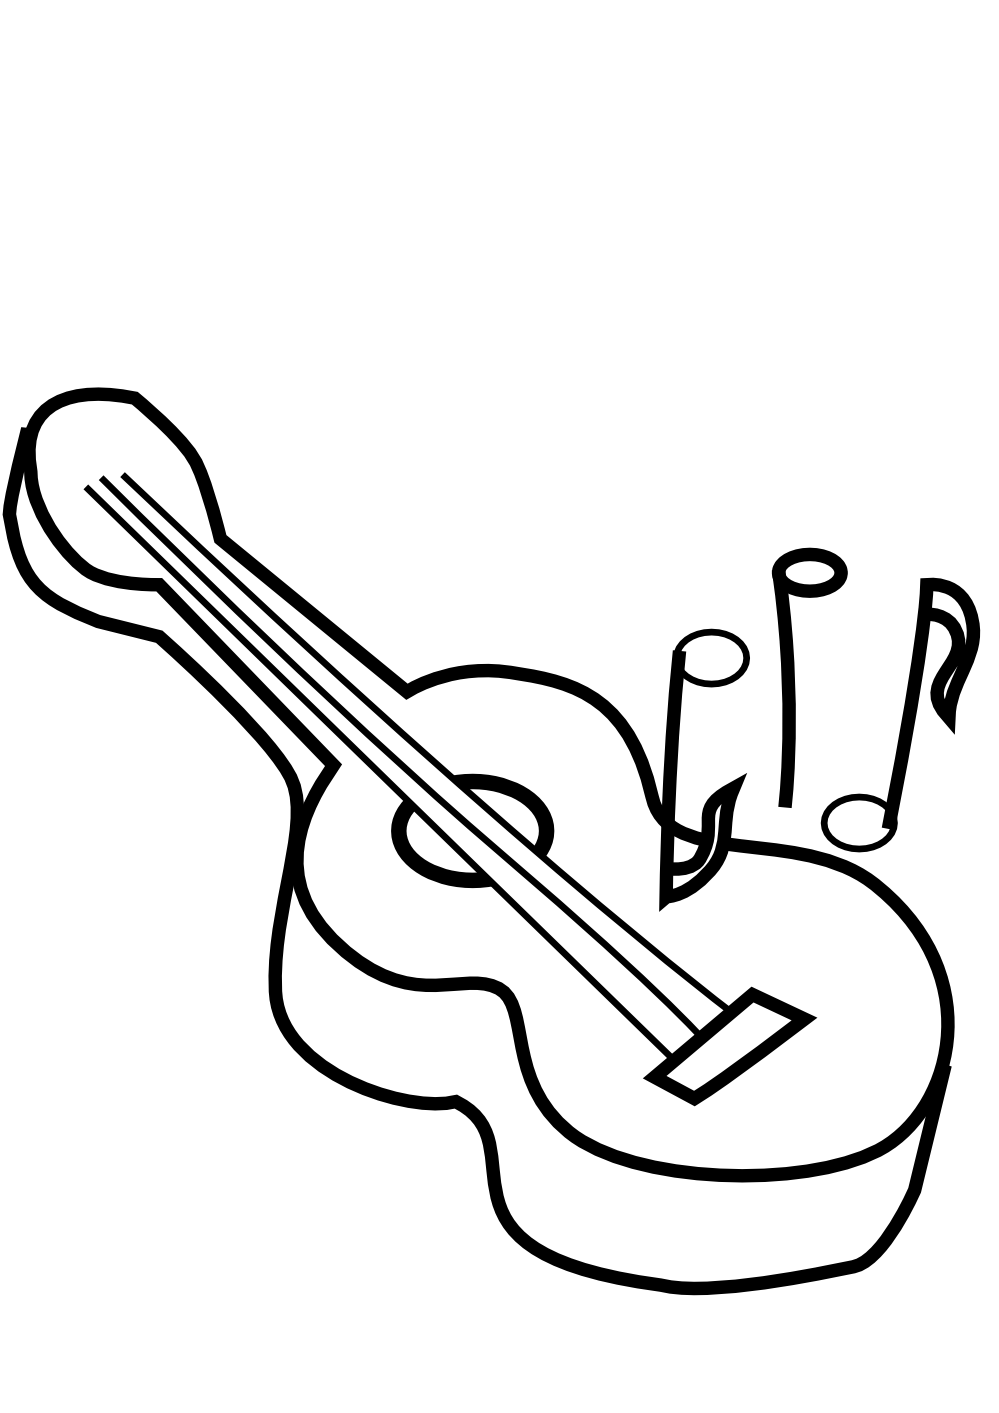 Clipart guitar 50 guitar. Clip art black and